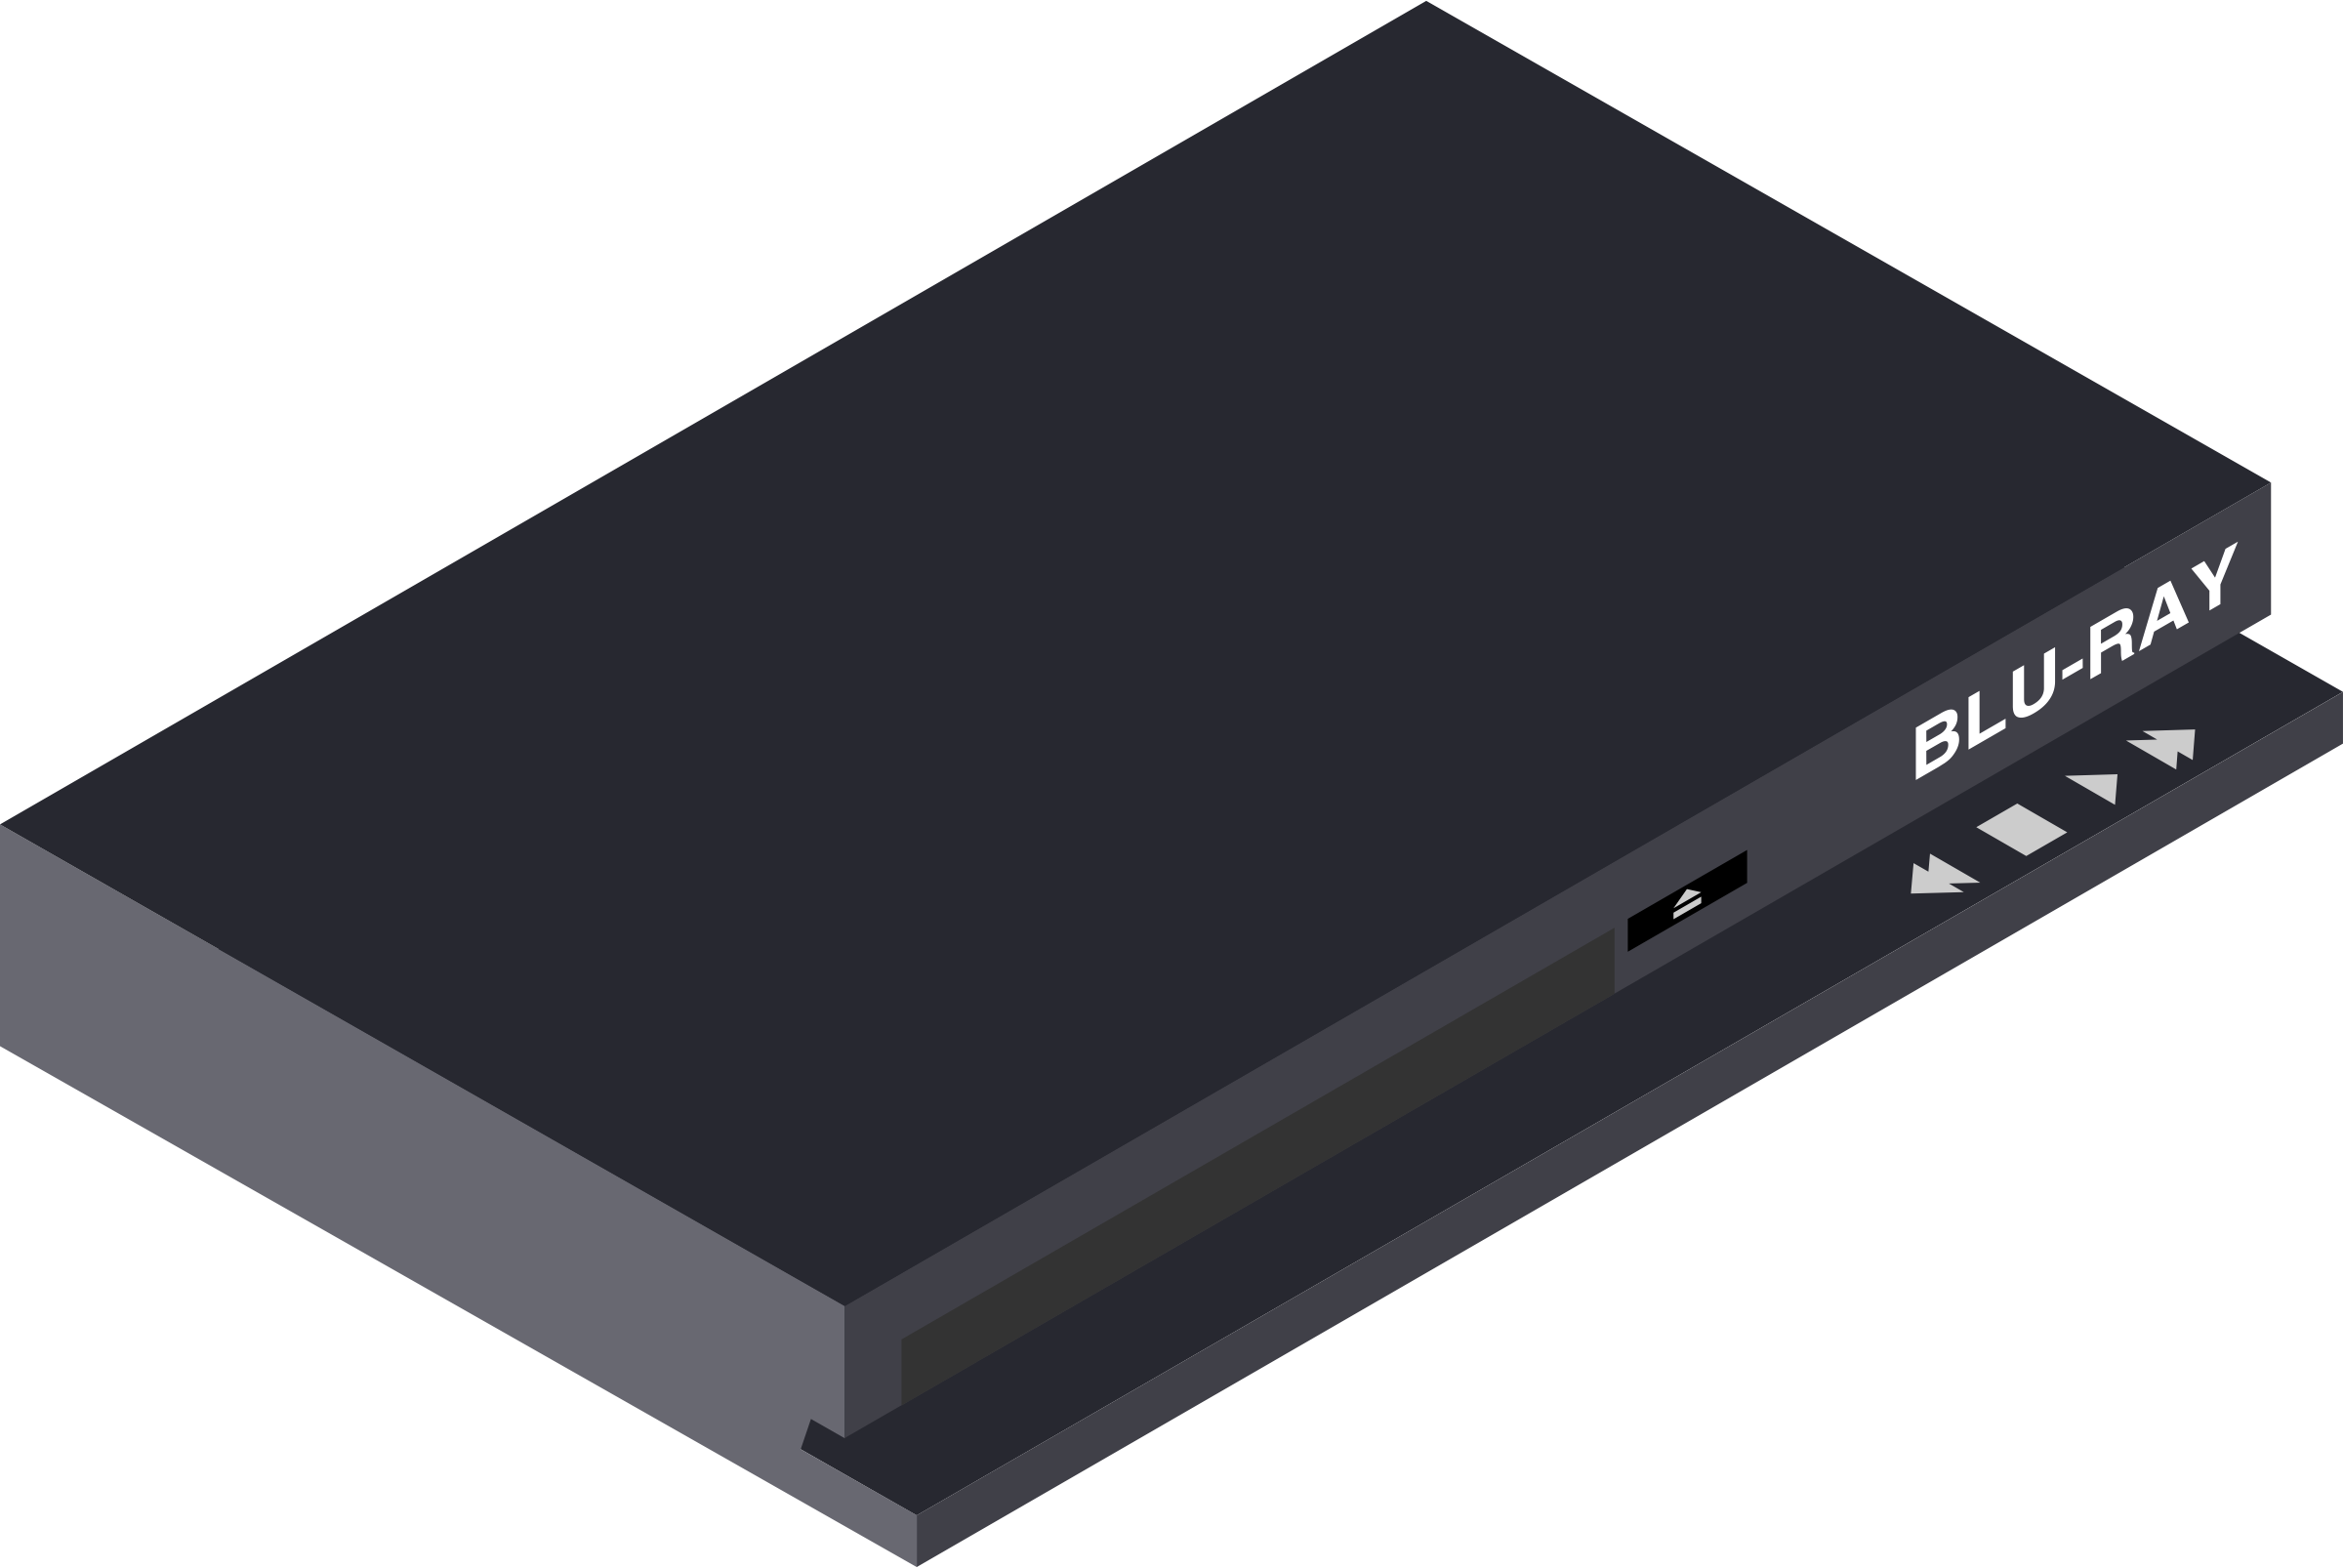 Blue Ray Player by Enriq766